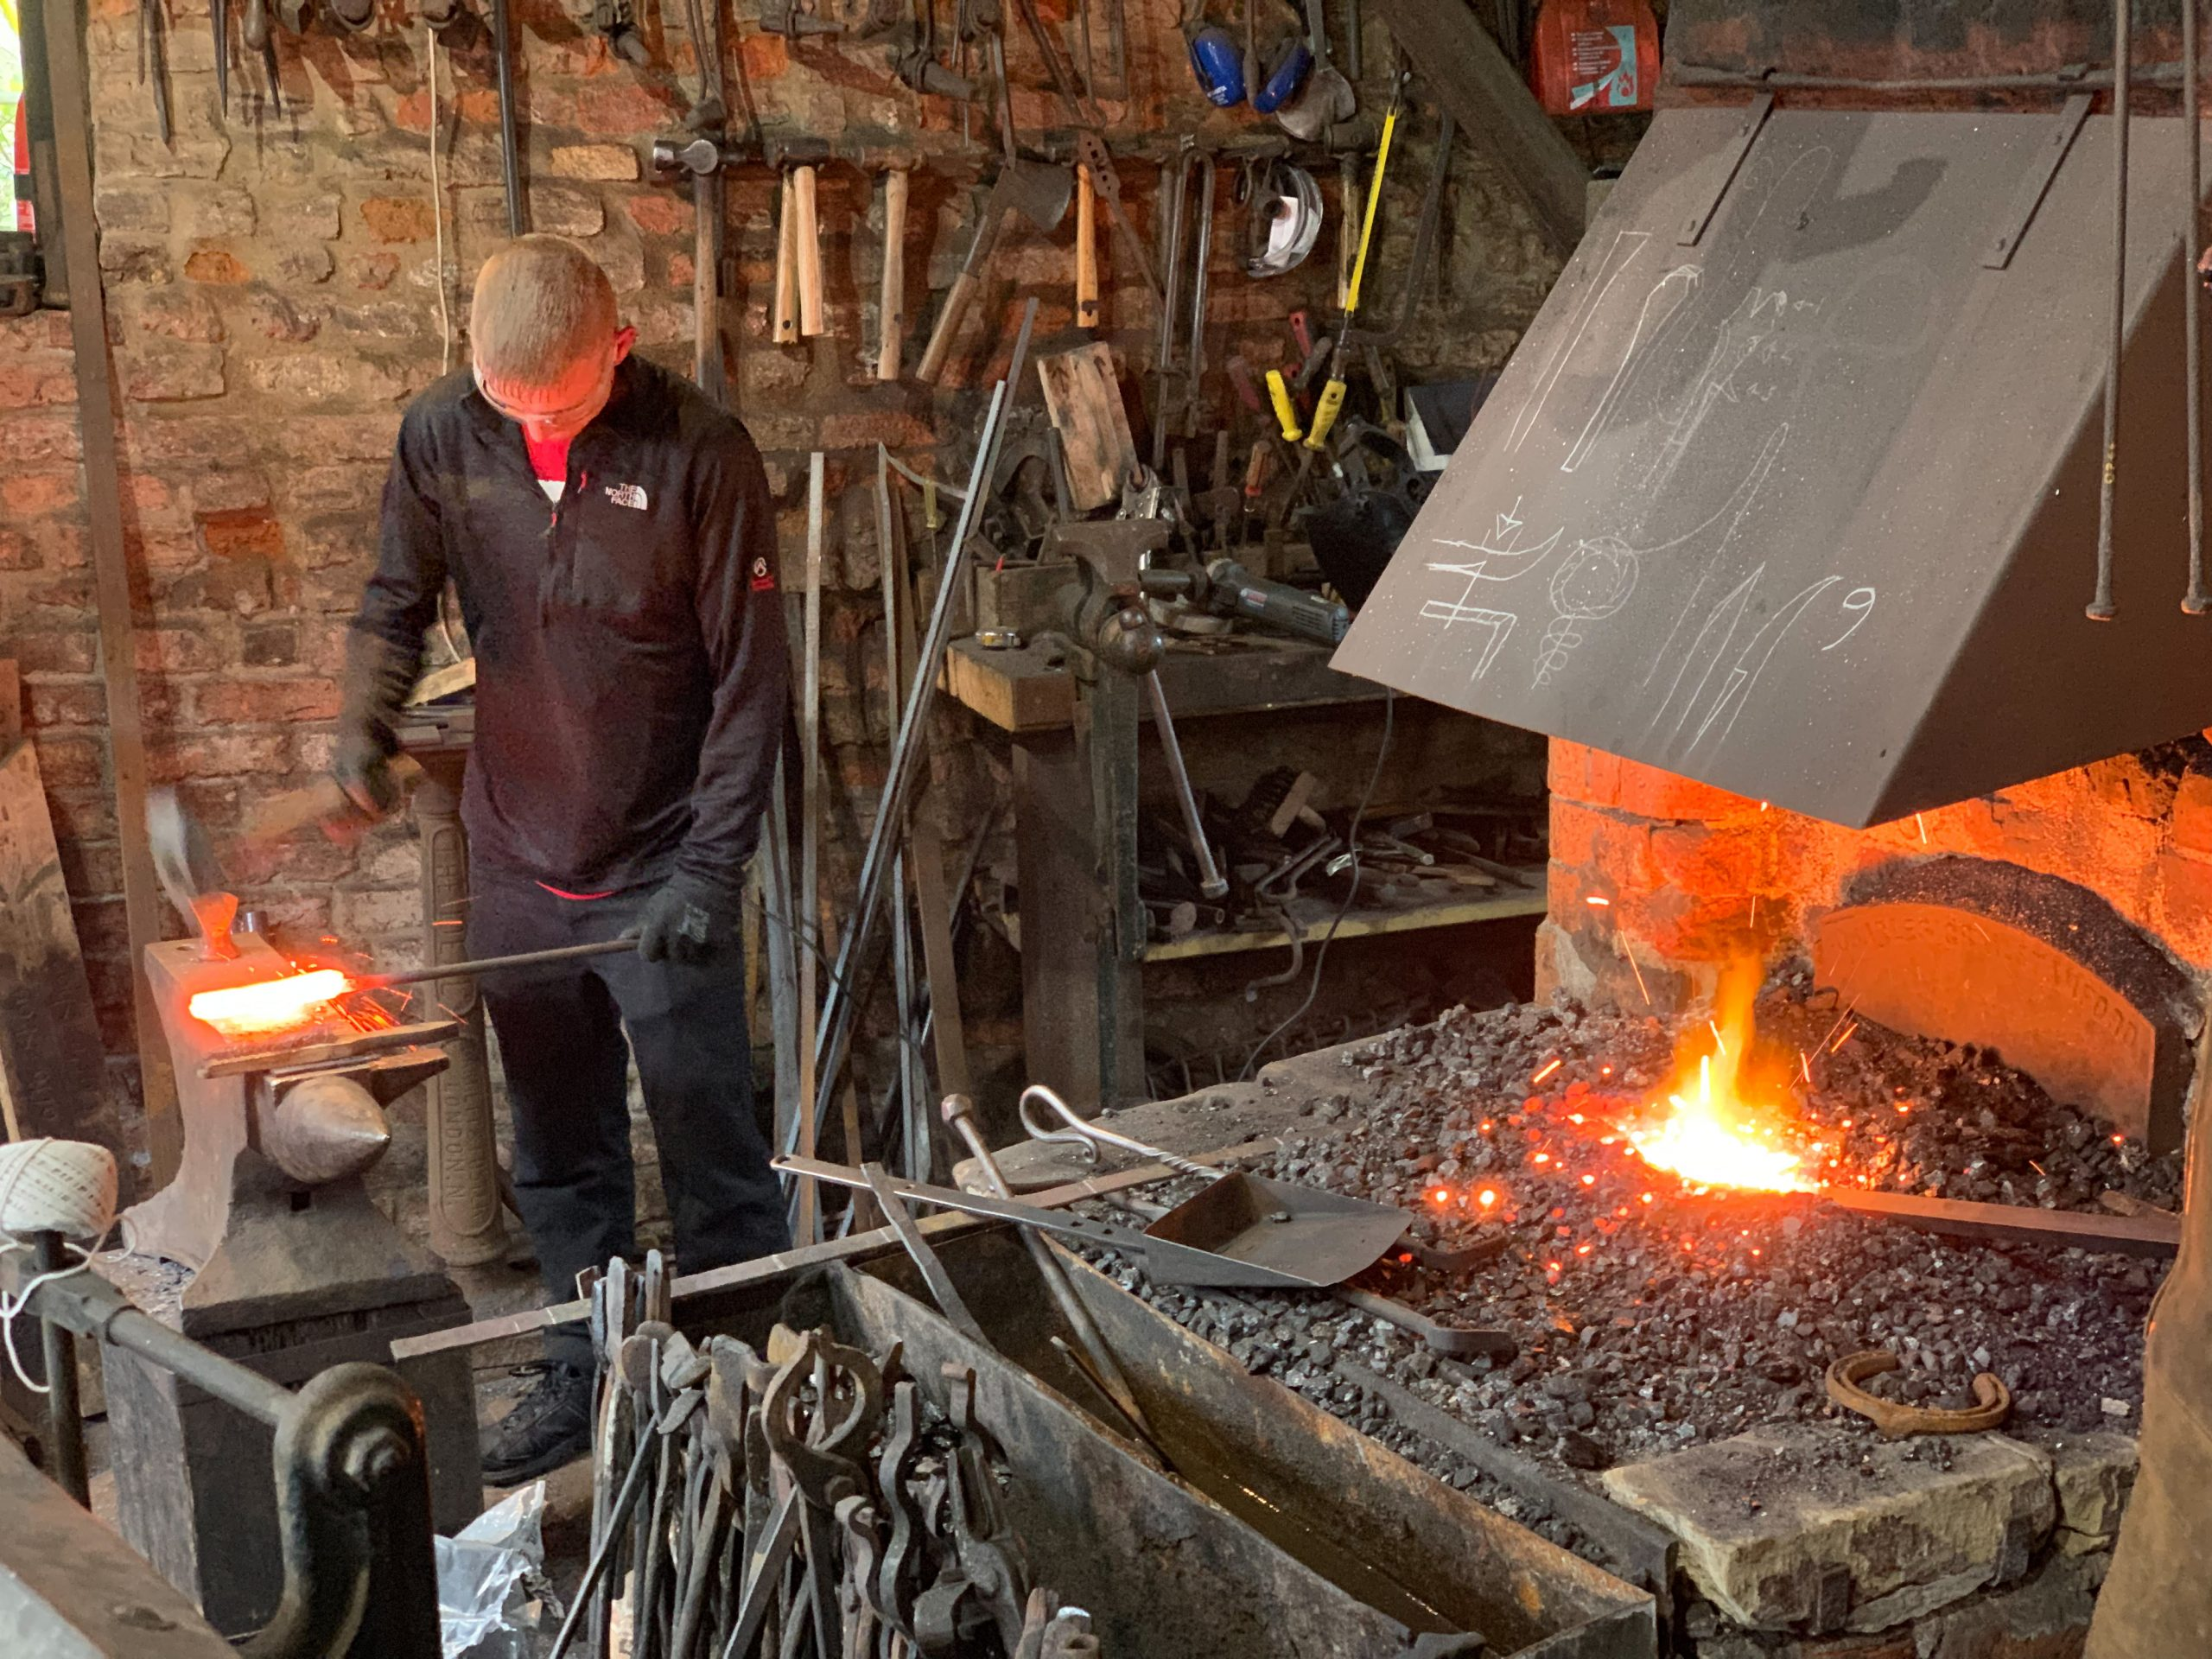 Blacksmith working in a forge